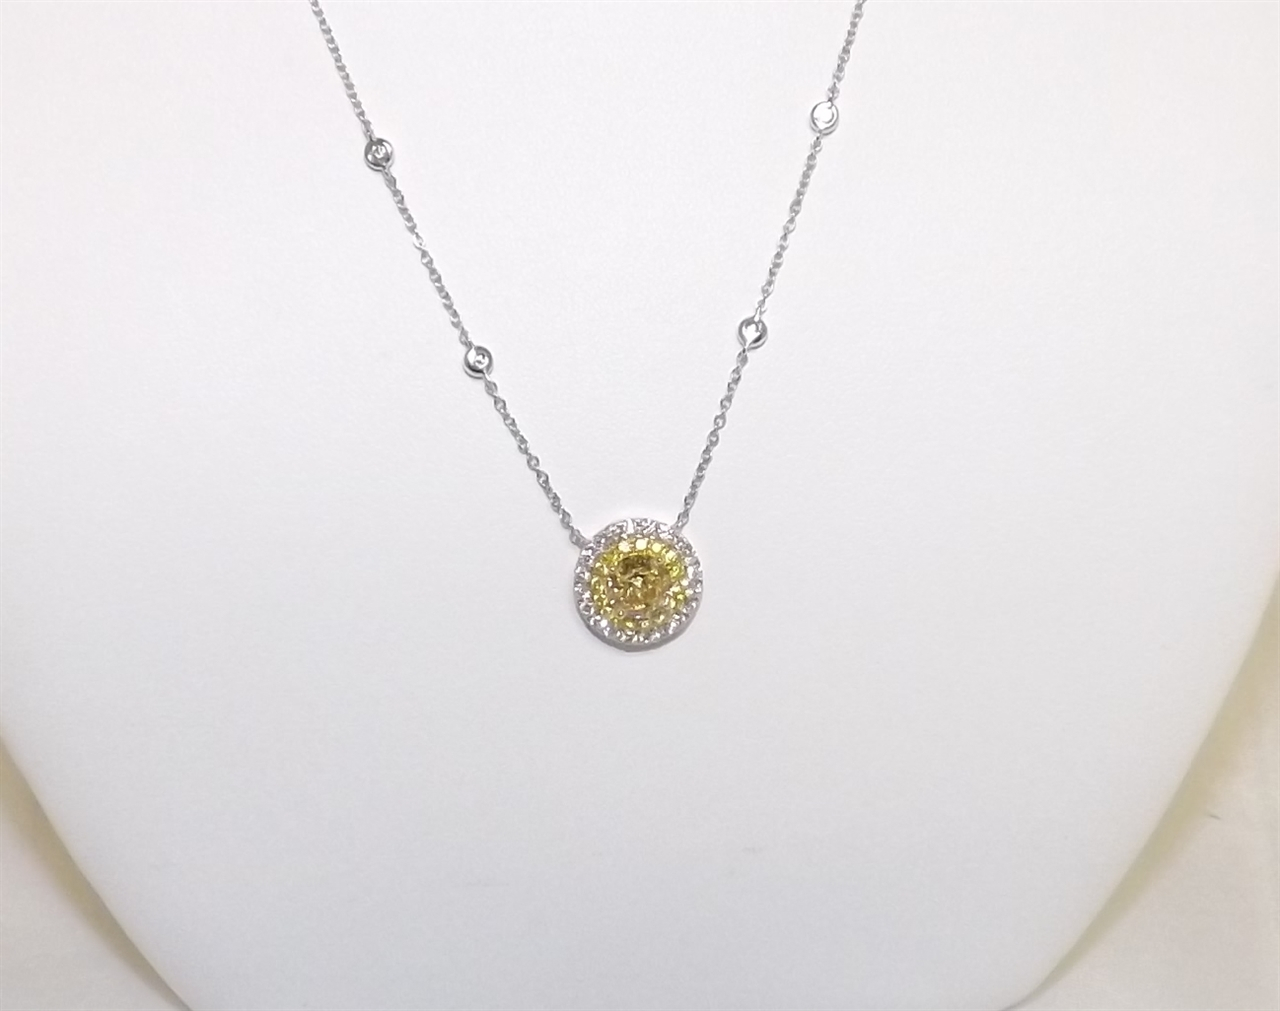 18K White Gold And Fancy Yellow Diamond Necklace Throughout Newest Diamond Necklaces In Yellow Gold (View 7 of 25)